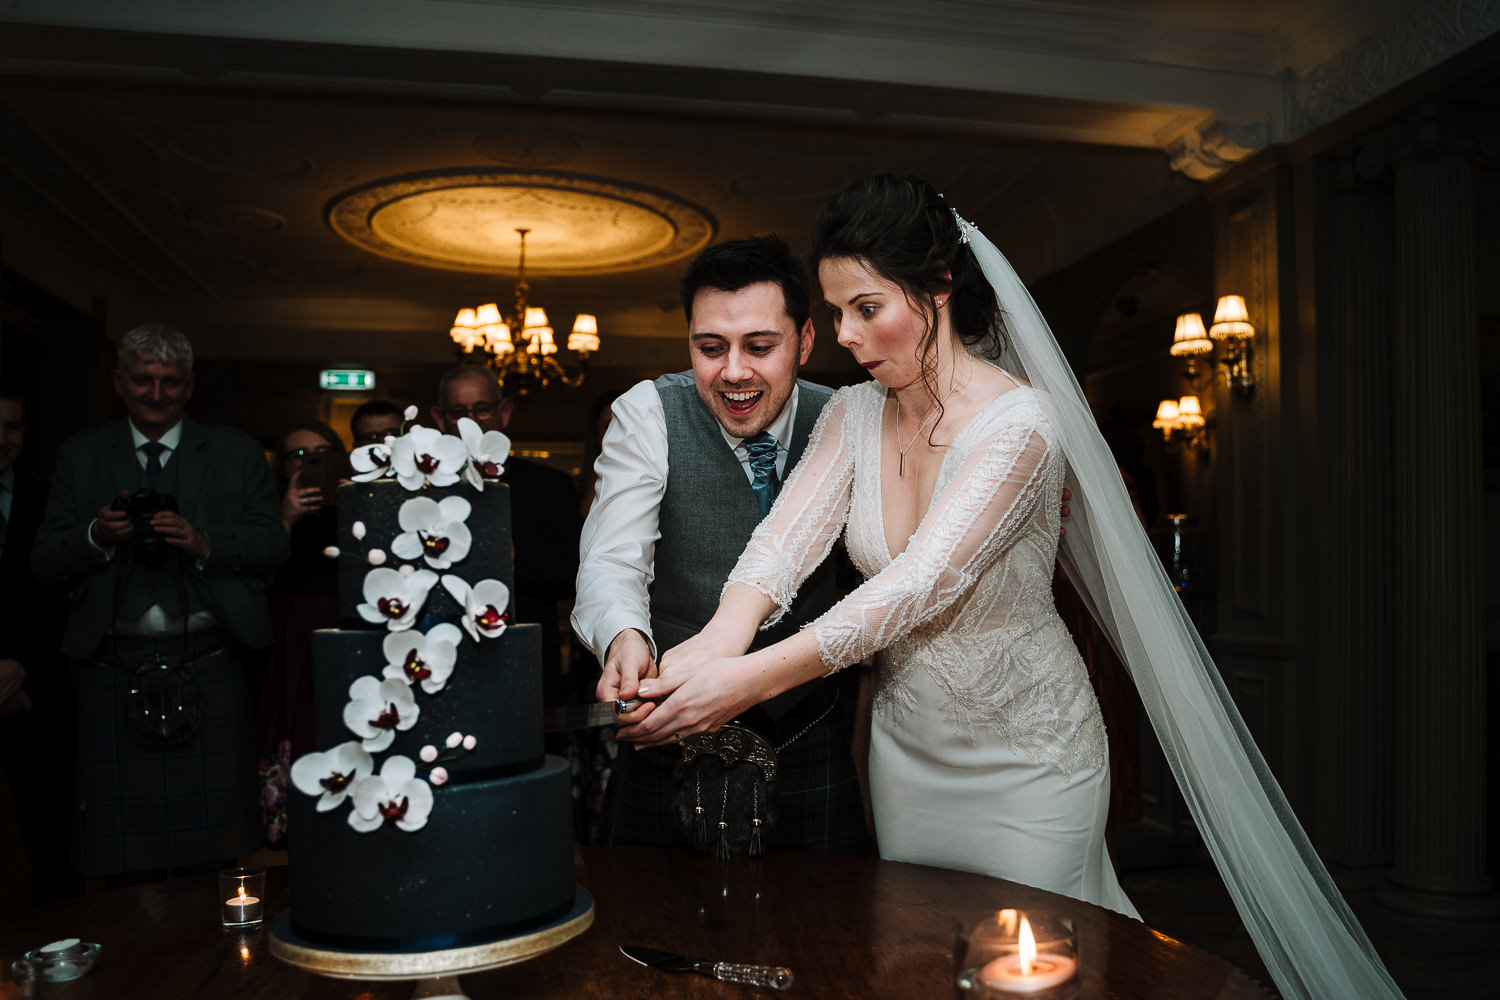 Cake cut at Thornton Manor